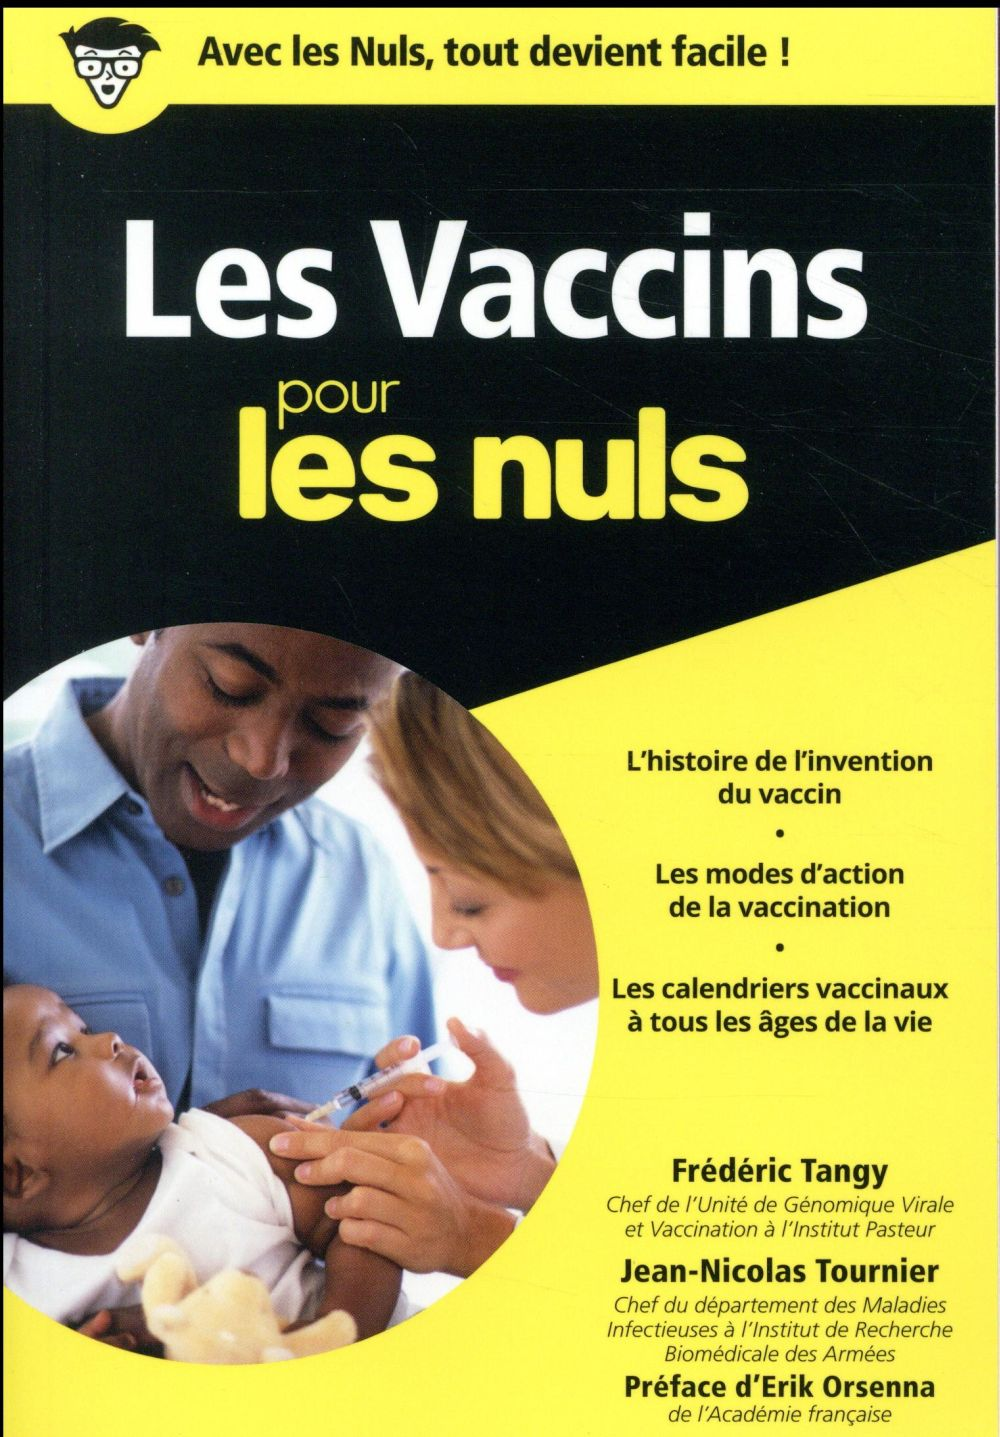 LES VACCINS POCHE POUR LES NULS TANGY FREDERIC First Editions